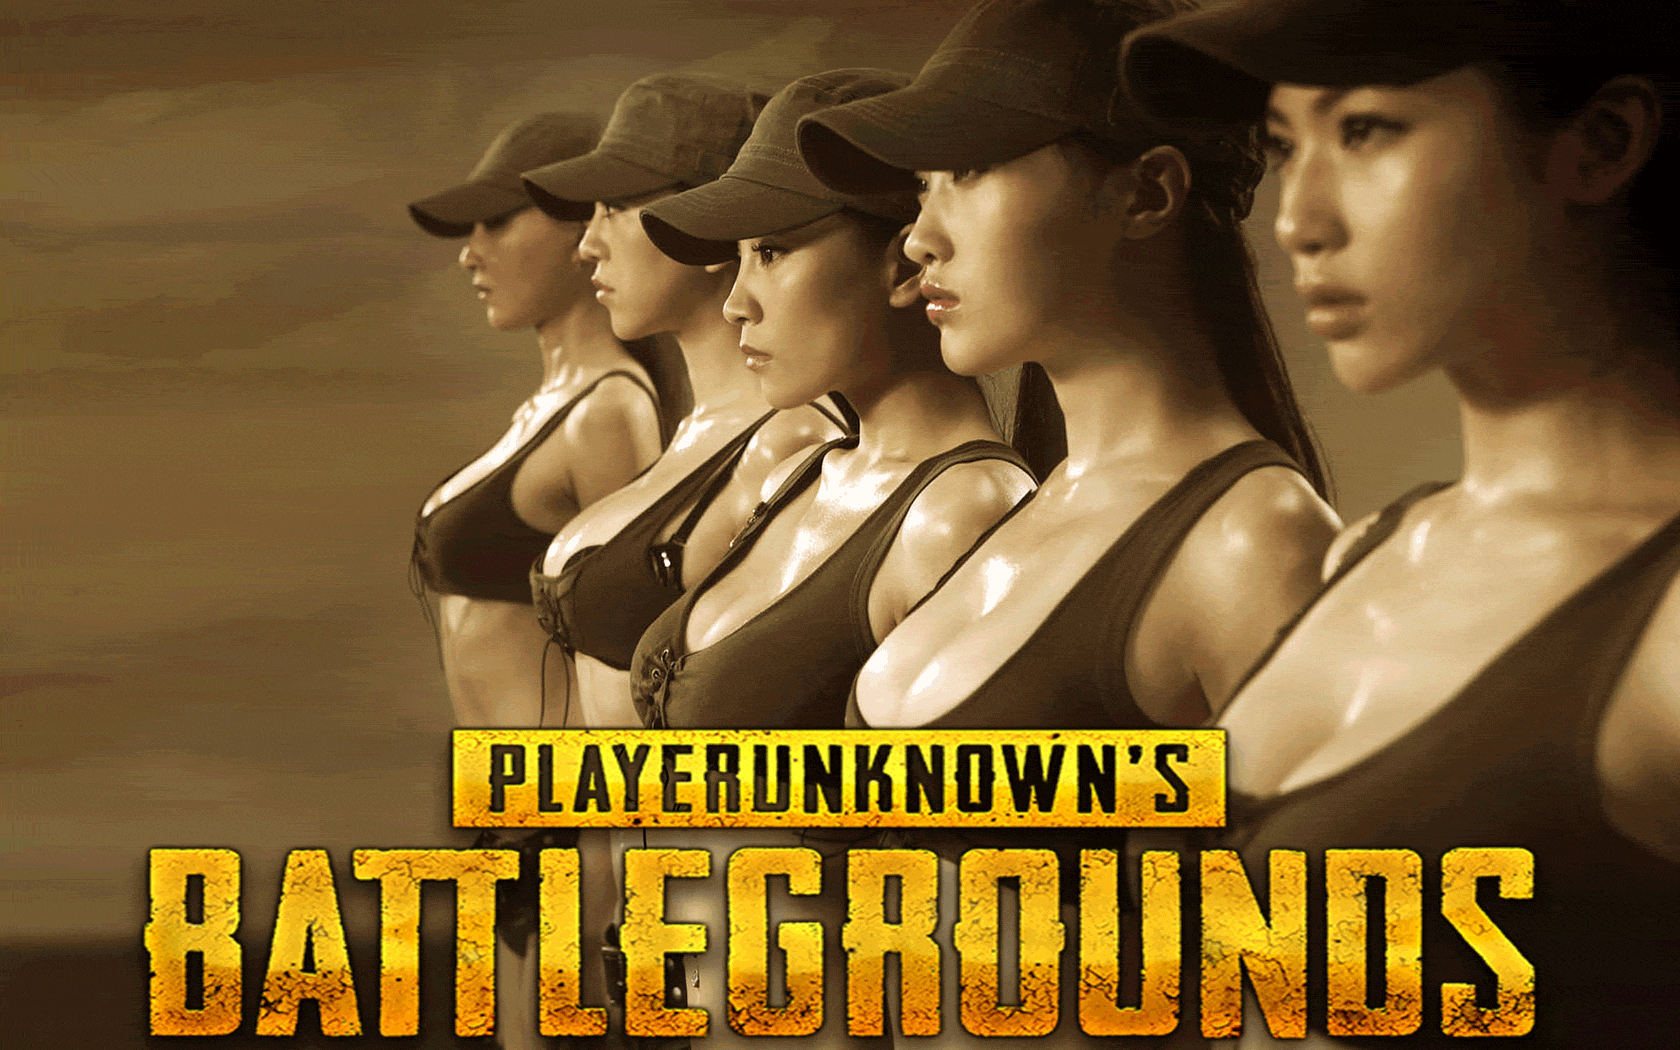 Pubg Girls posted by Ethan Anderson